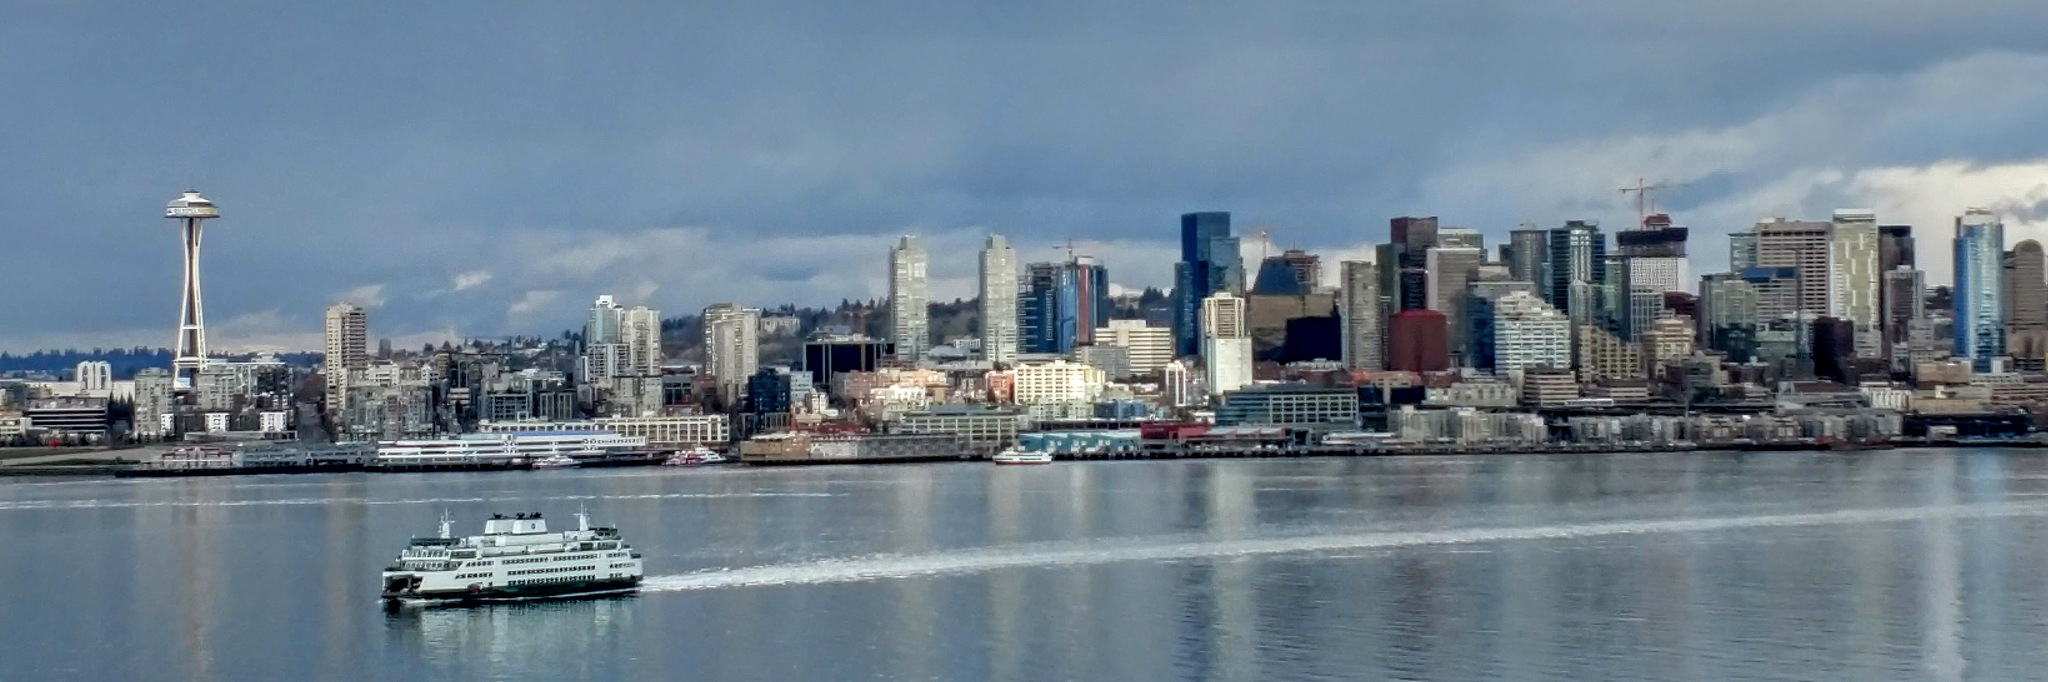 Seattle by tomo3551223